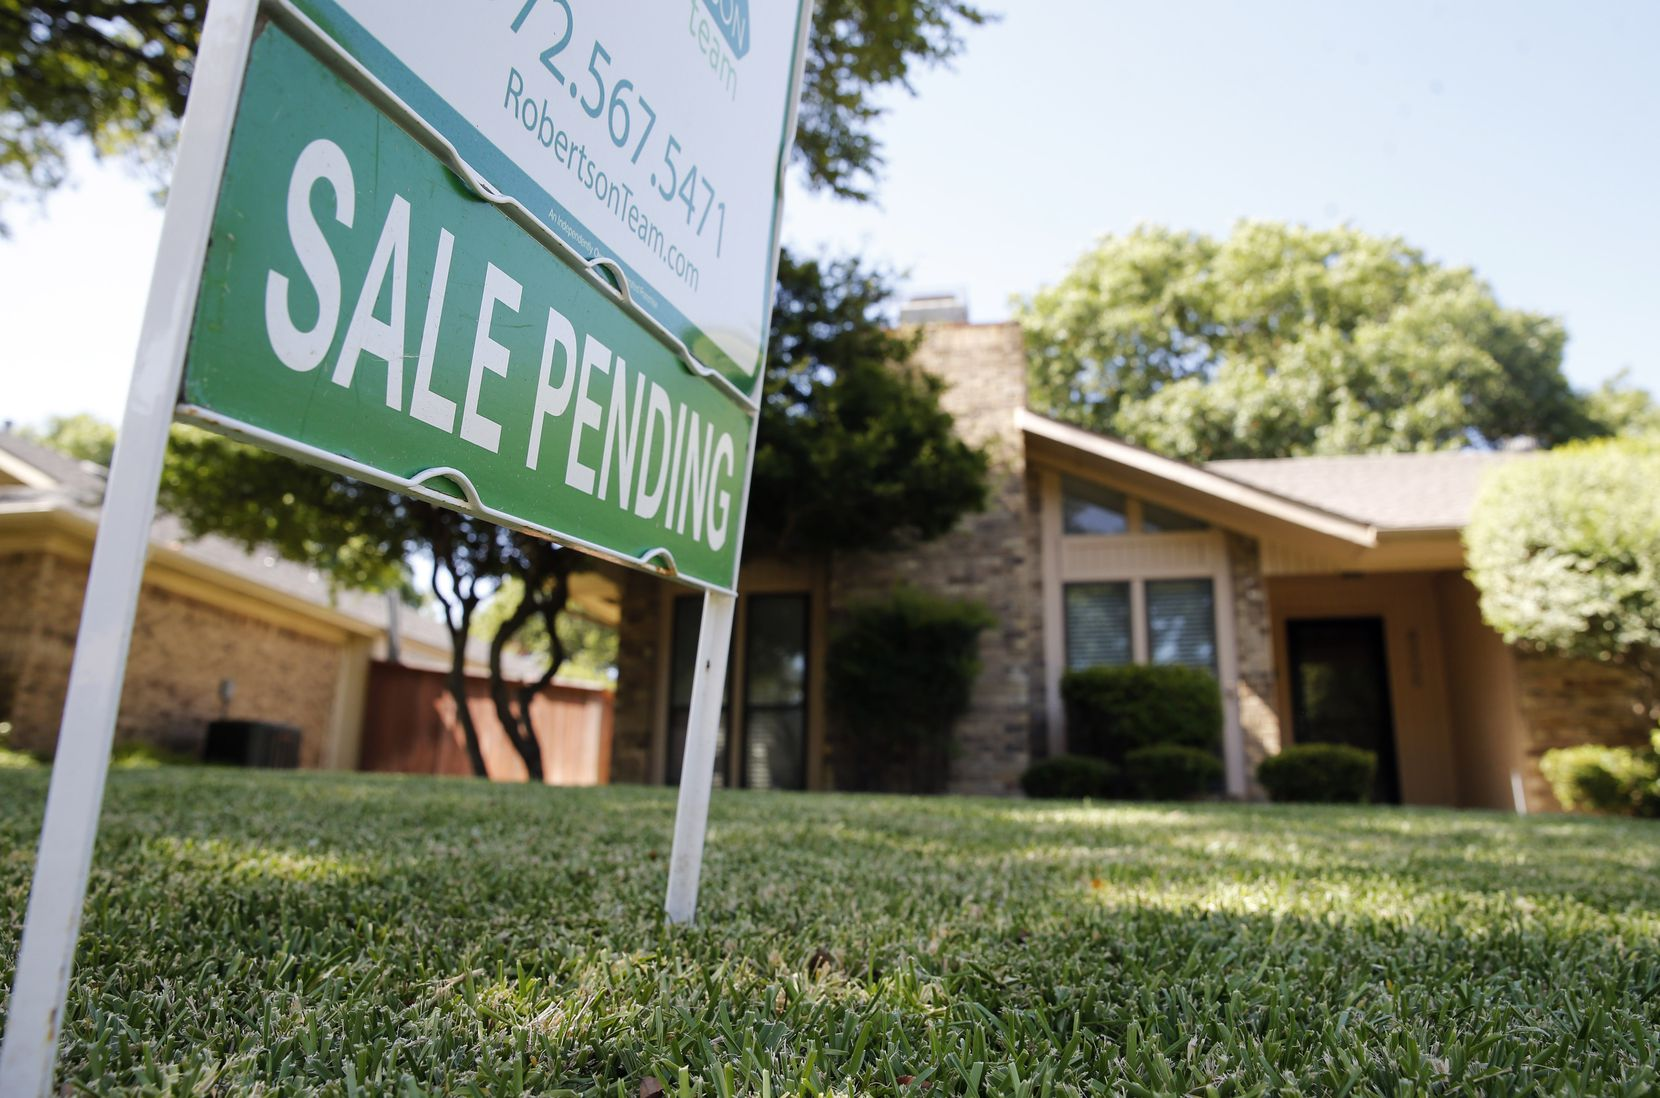 Home for sale   in Plano on Monday, August 10, 2020. Home sales in North Texas exploded in July, rising 25% from a year ago to the largest ever single-month sales total.